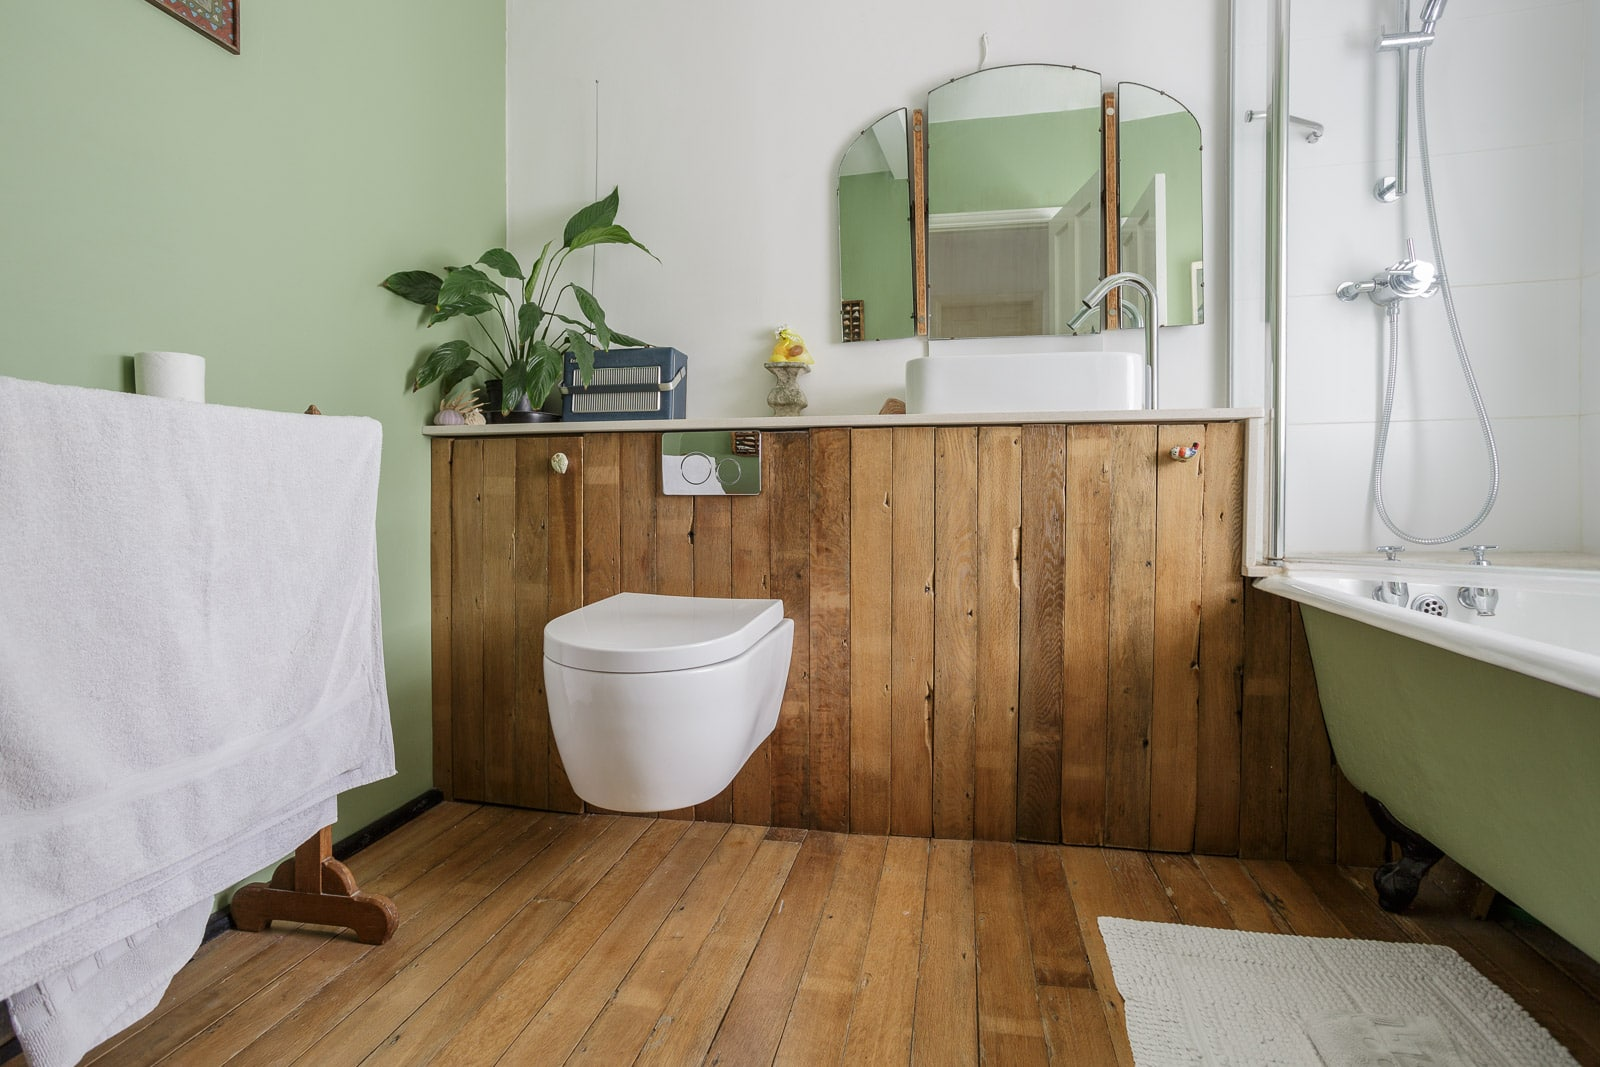 Rustic style bathroom with white porcelain toilet mounted on wooden panel with matching flooring